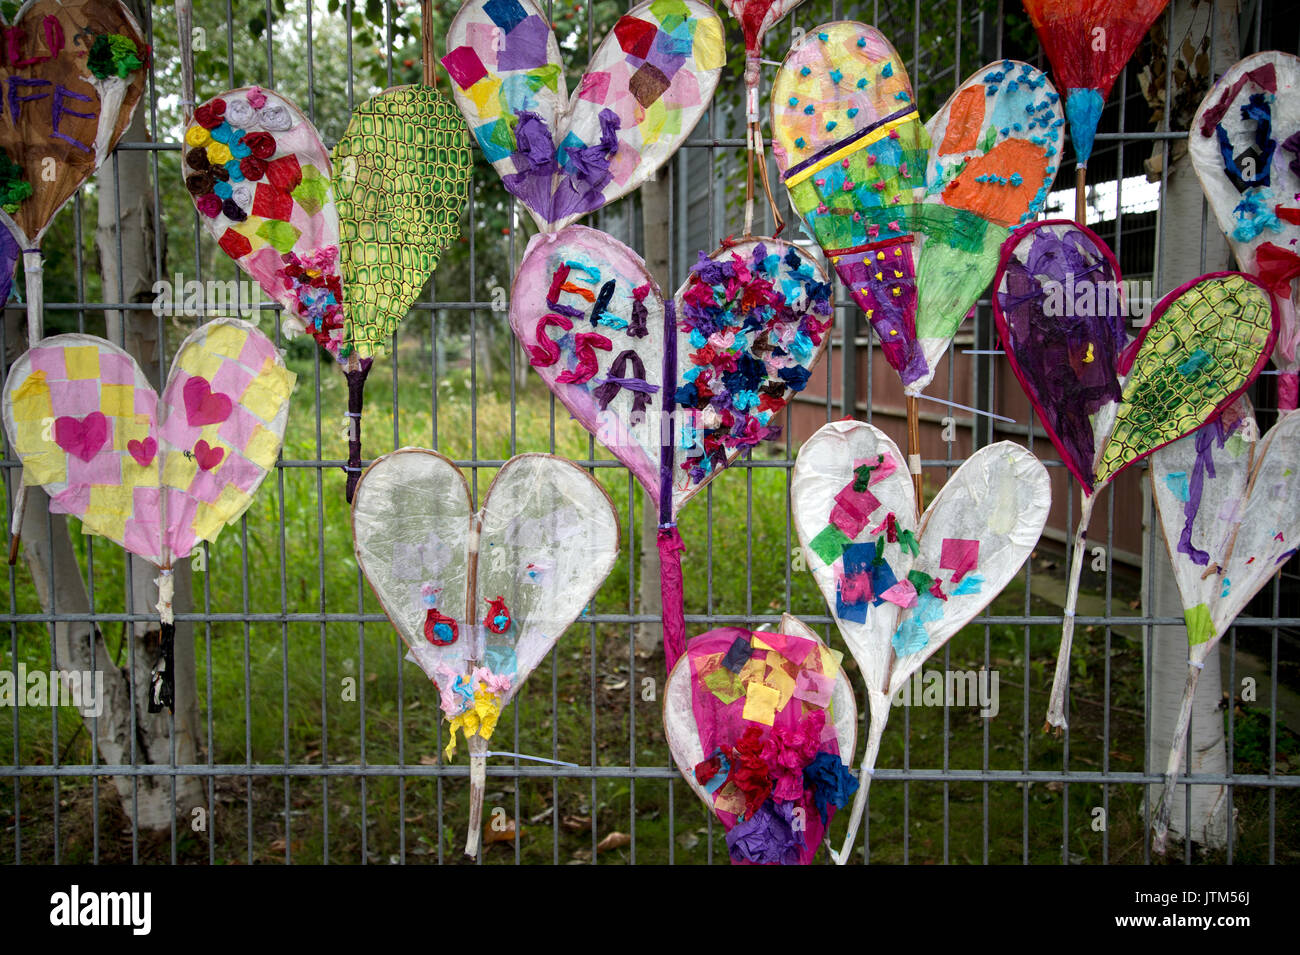 Grenfell Tower, West London. Aftermath of the tragedy. memorial to victims of the fire, heart shaped kites made by children - Stock Image